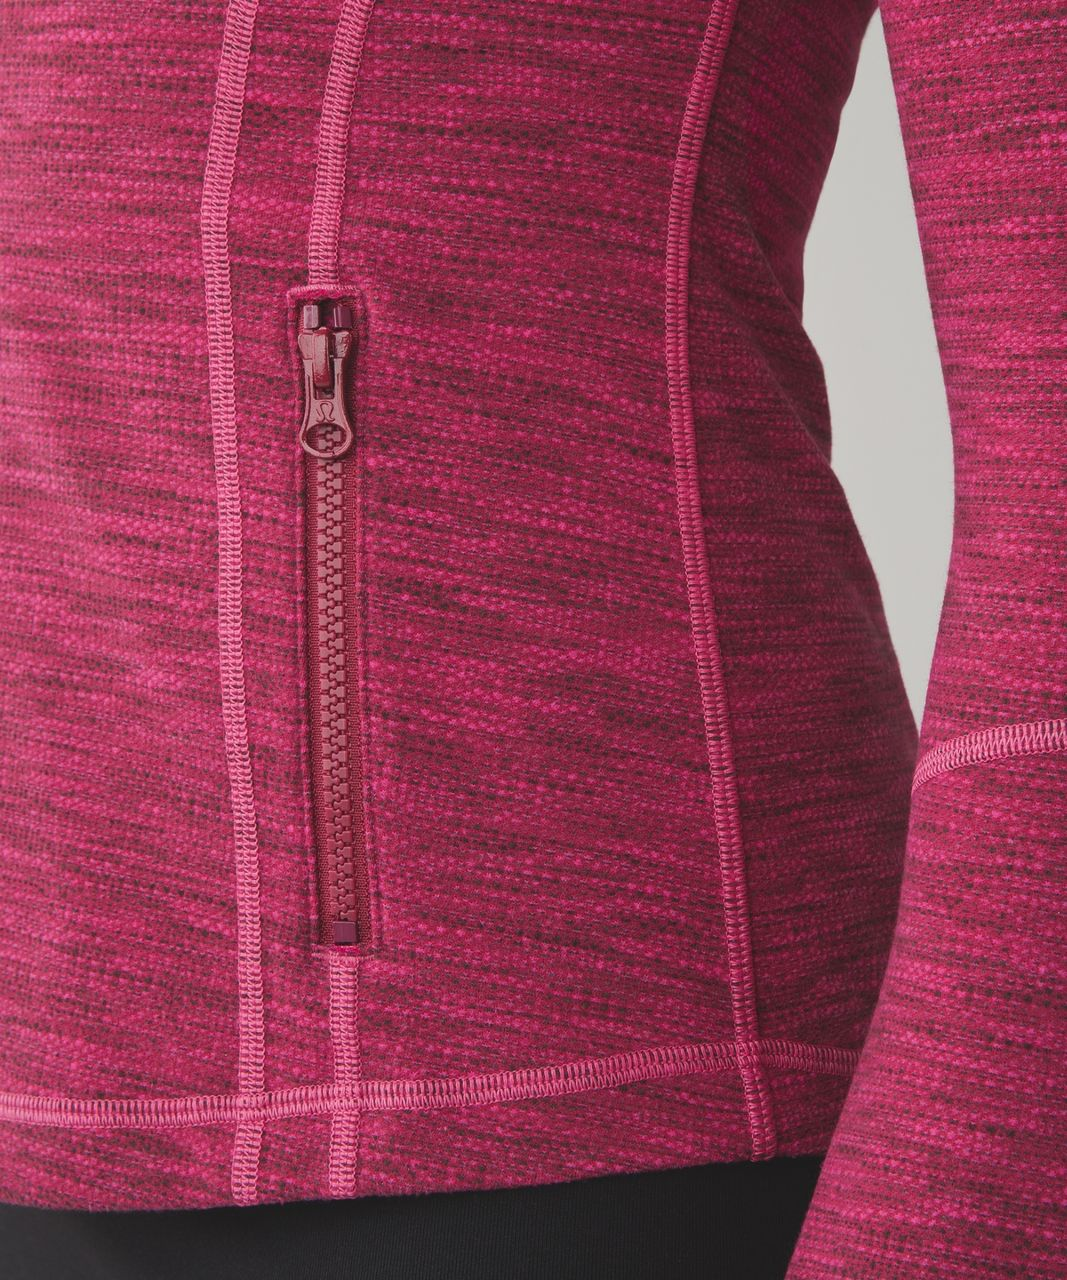 Lululemon Define Jacket - Diamond Jacquard Berry Rumble Jewelled Magenta